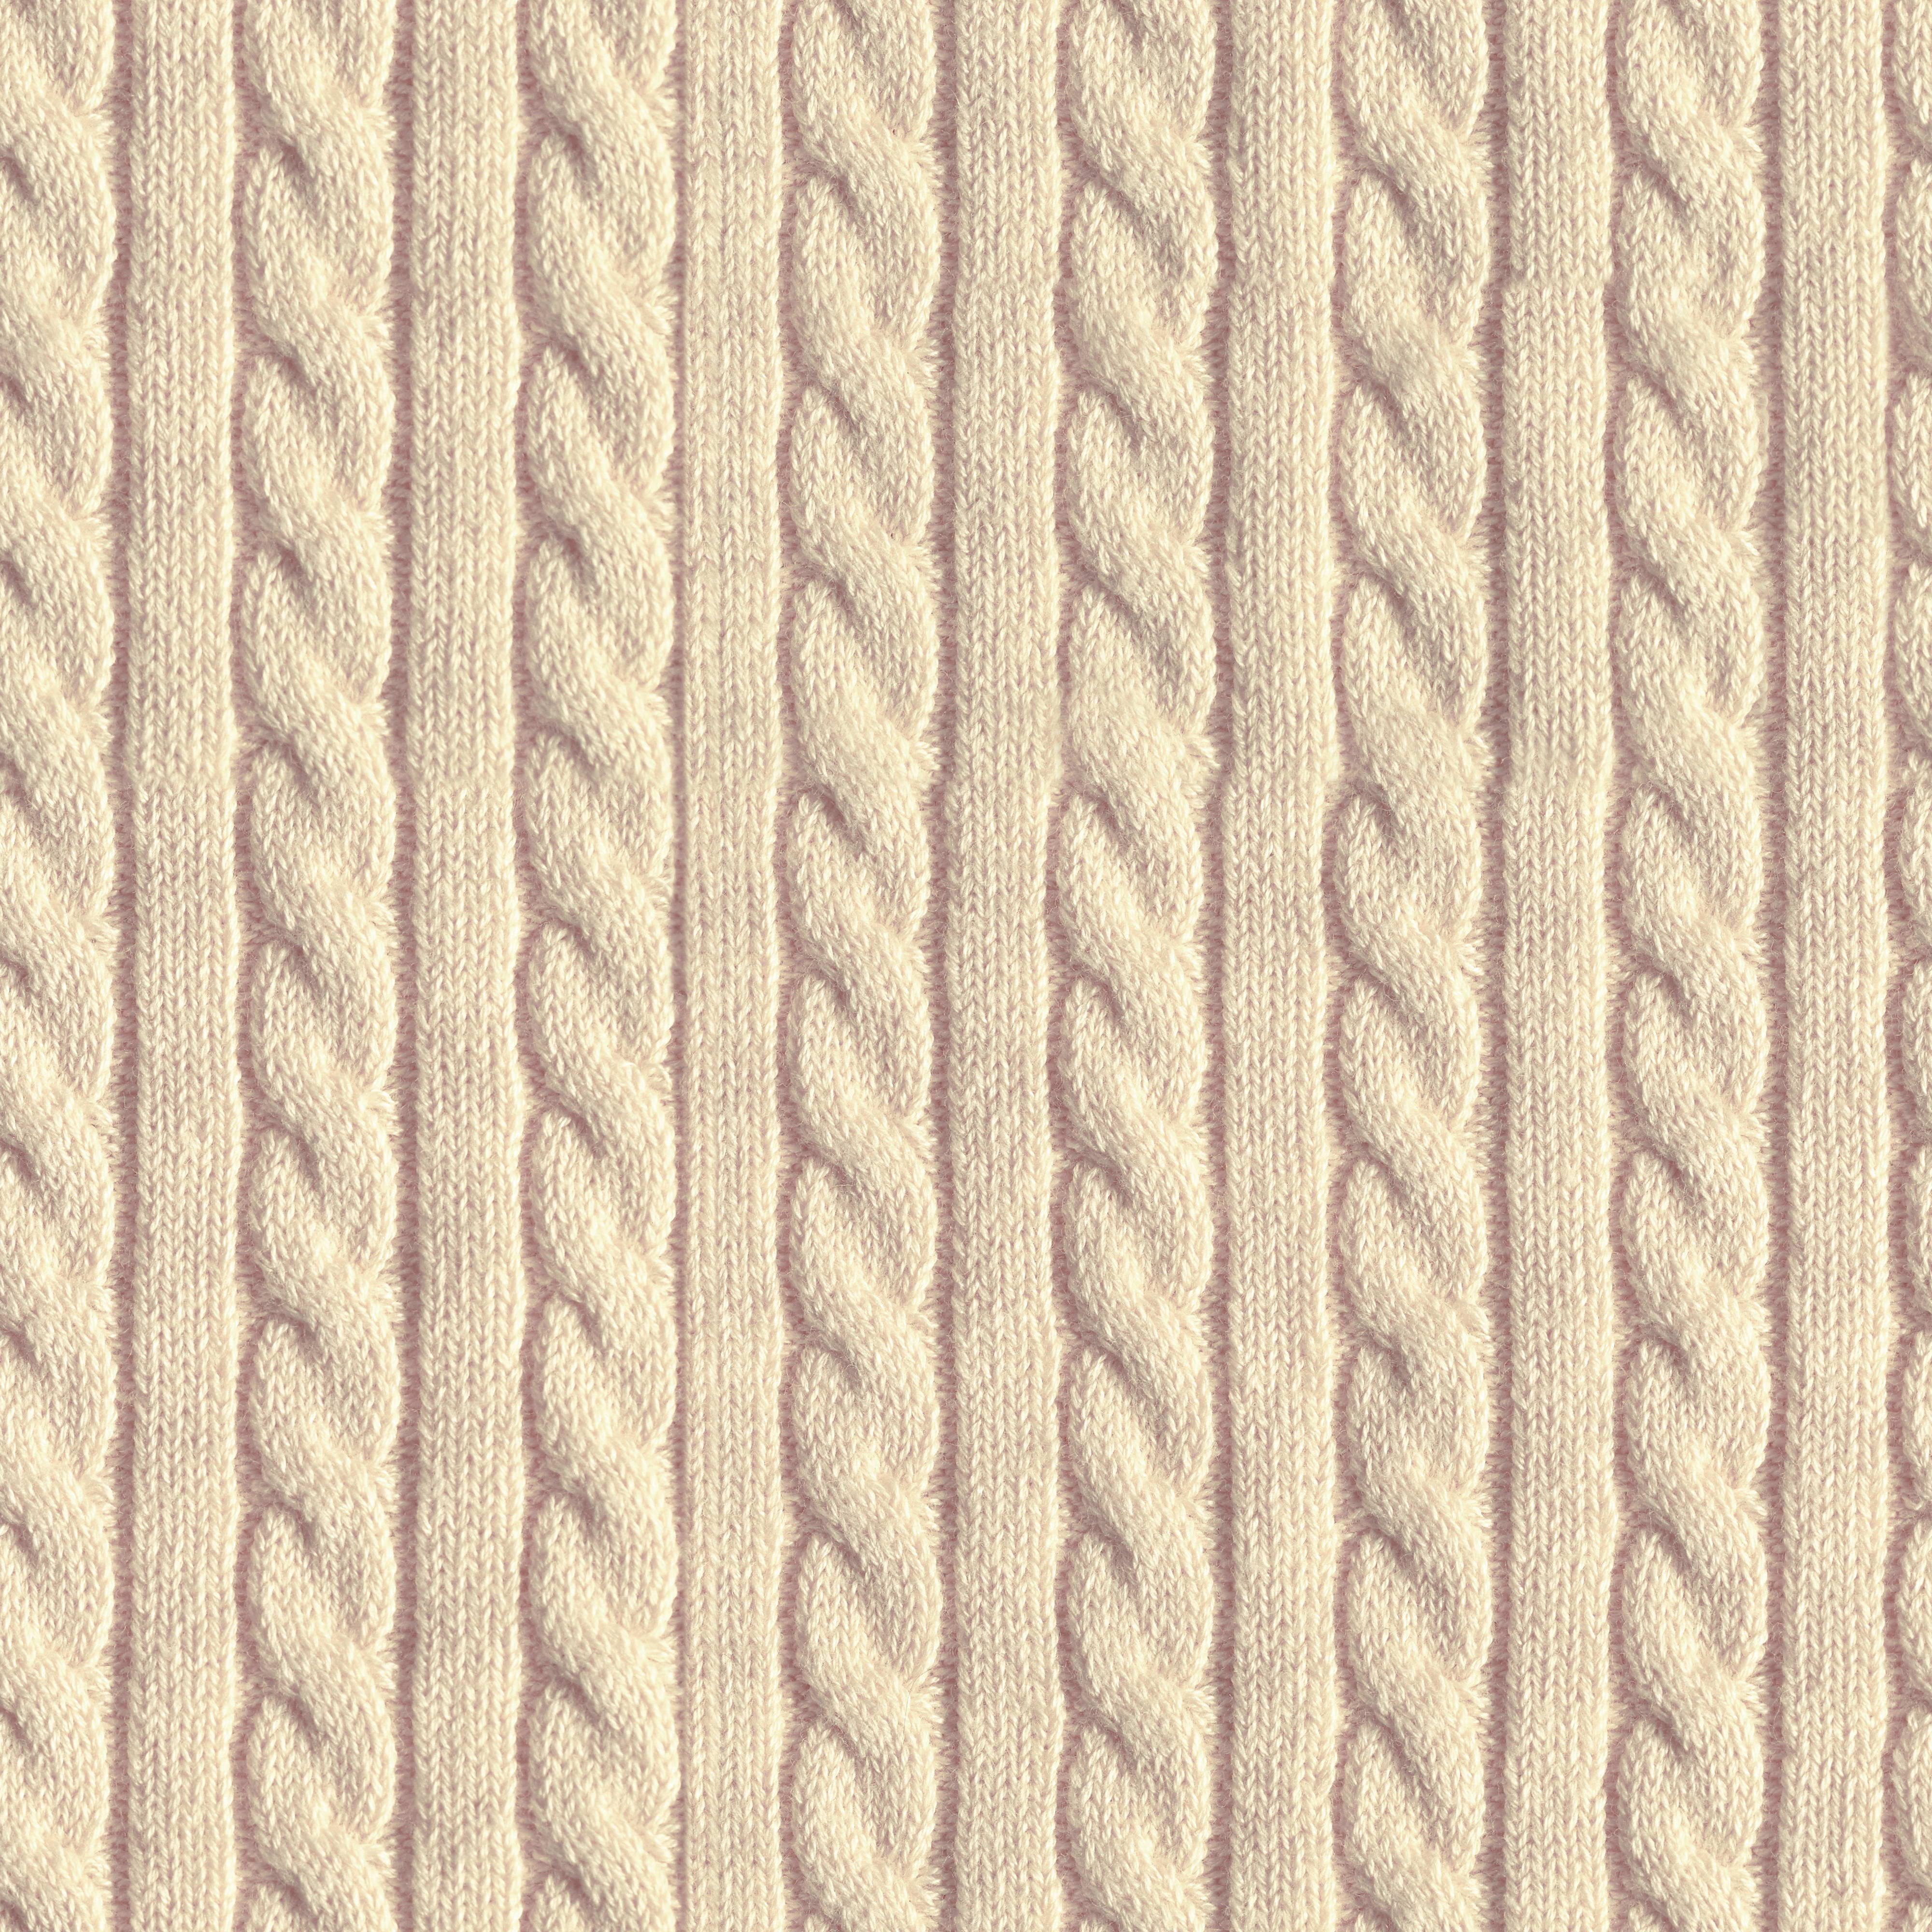 Fabric cloth download photo background texture knitted for Cloth fabric